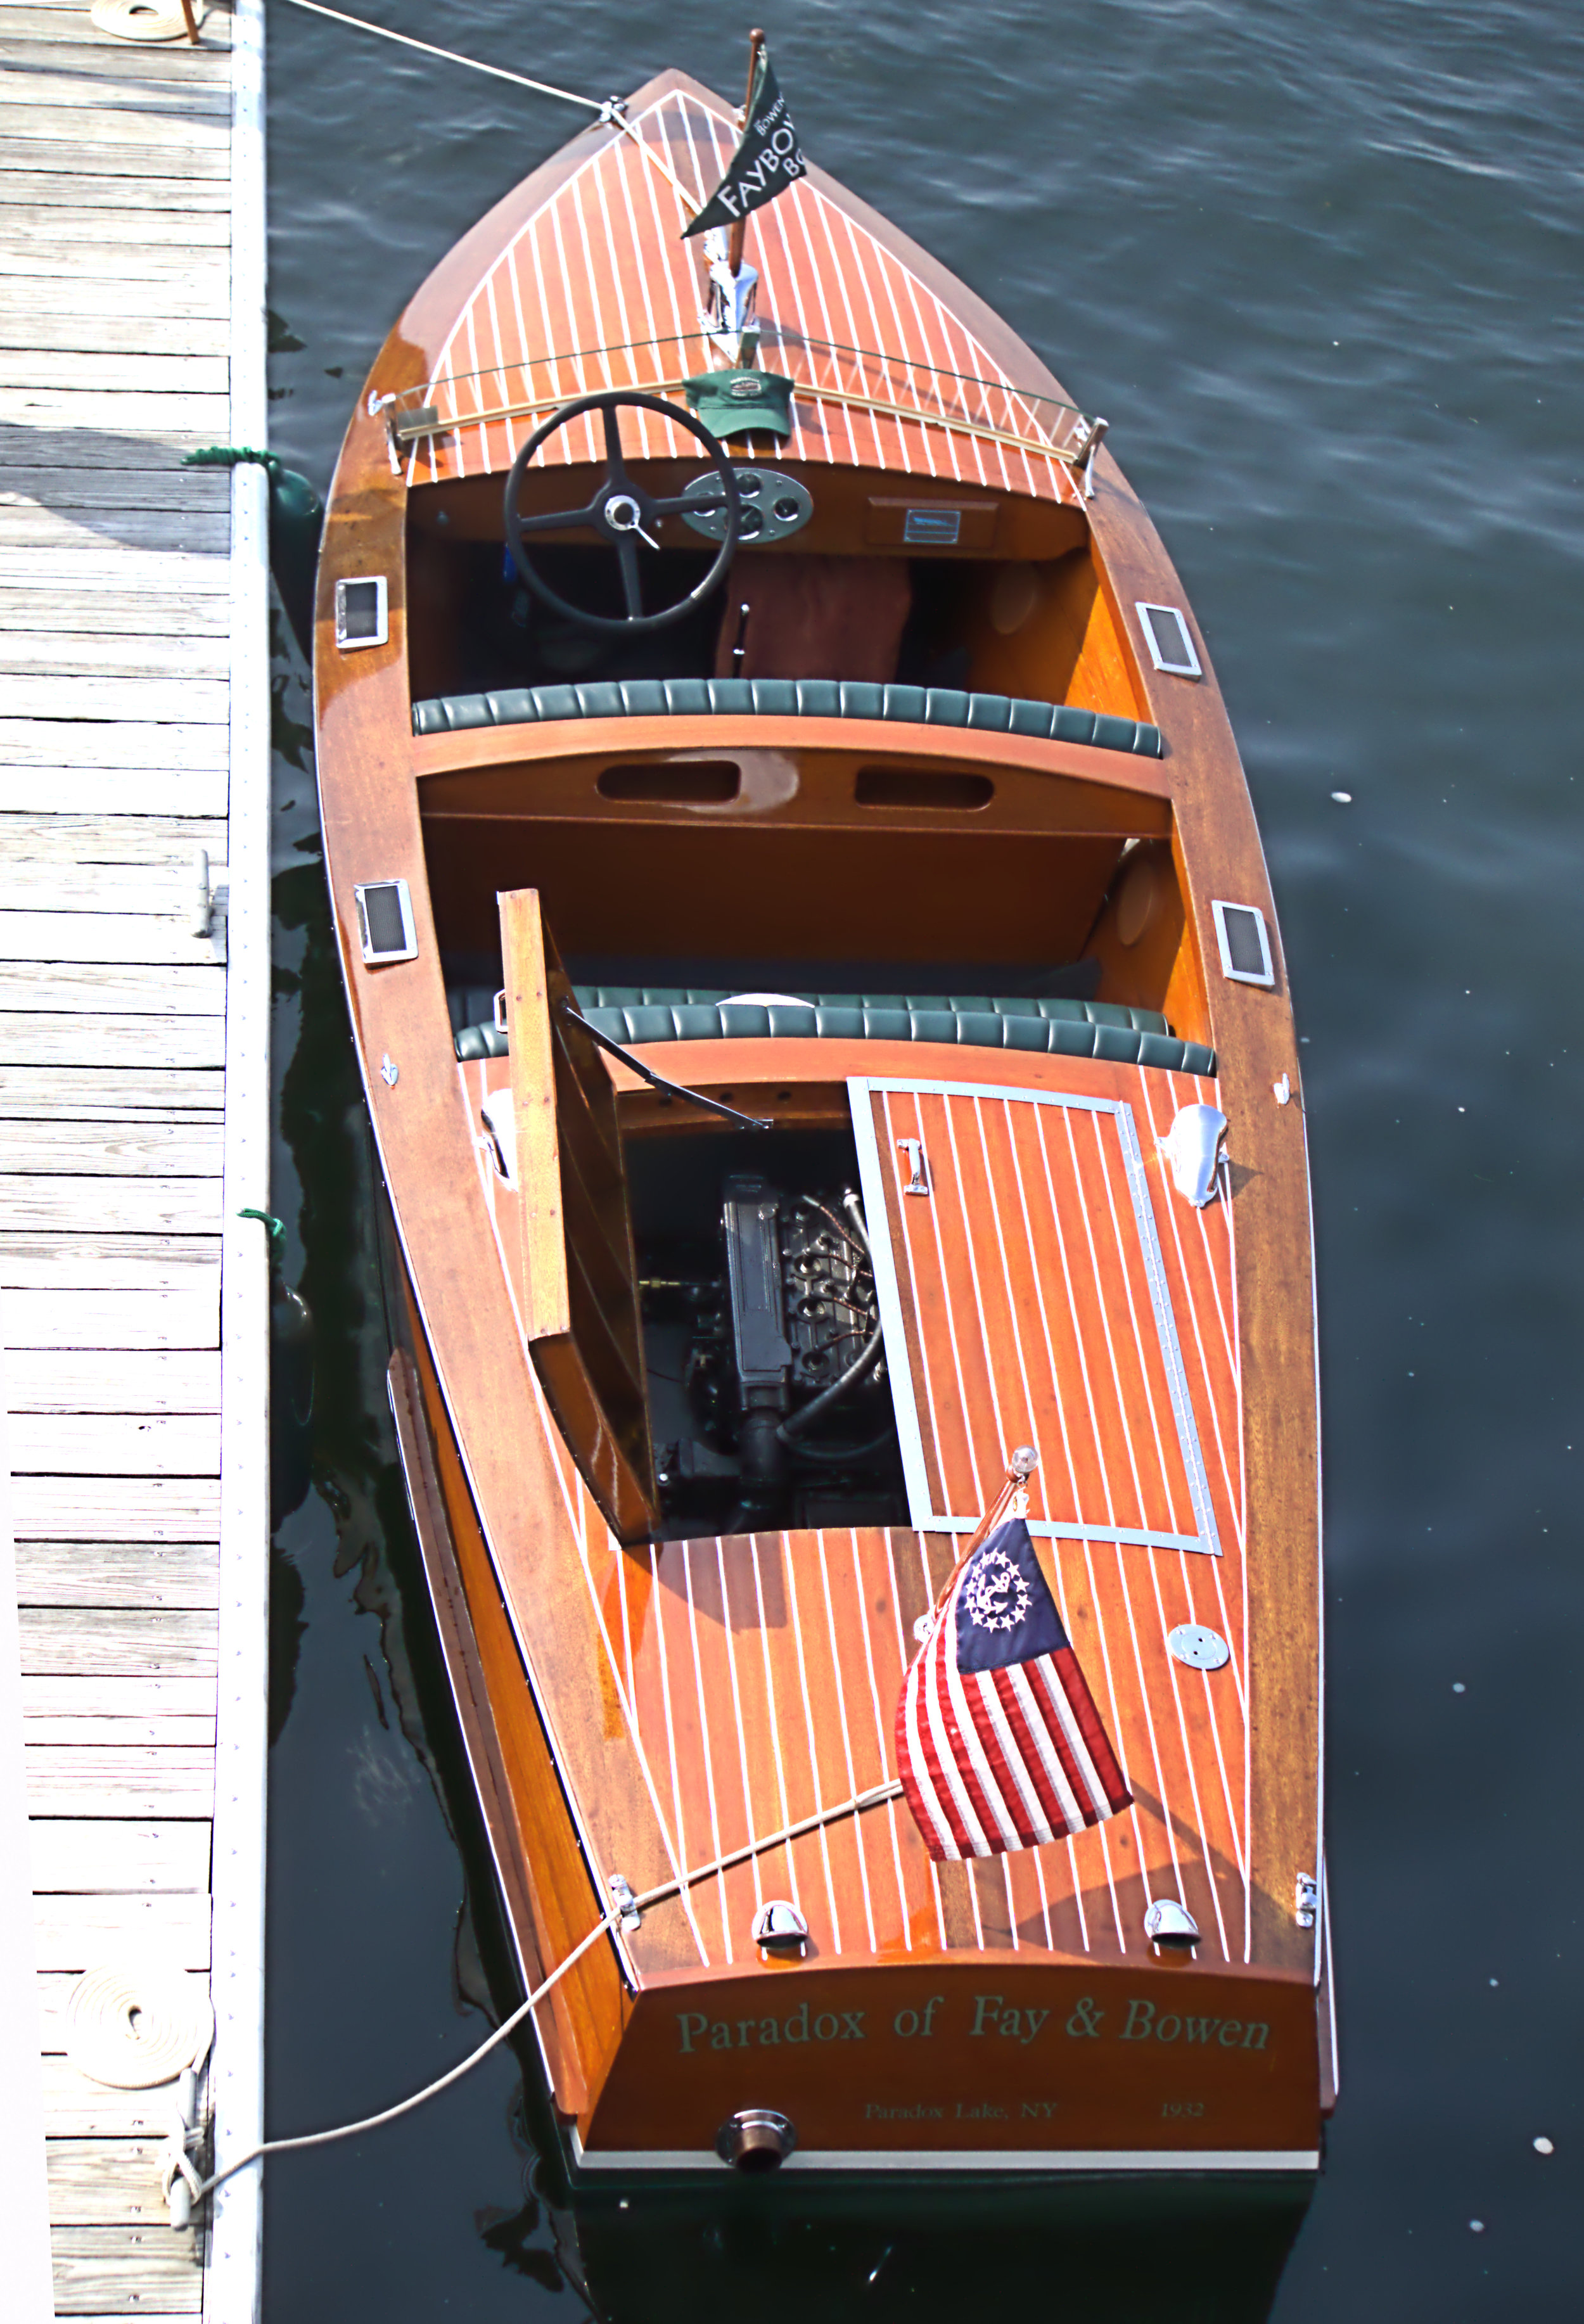 Best in Show - Paradox of Fay and Bowen, 1932 18' Faybow Boats Ludington Runabout, owned by Jim and Karin Bowen